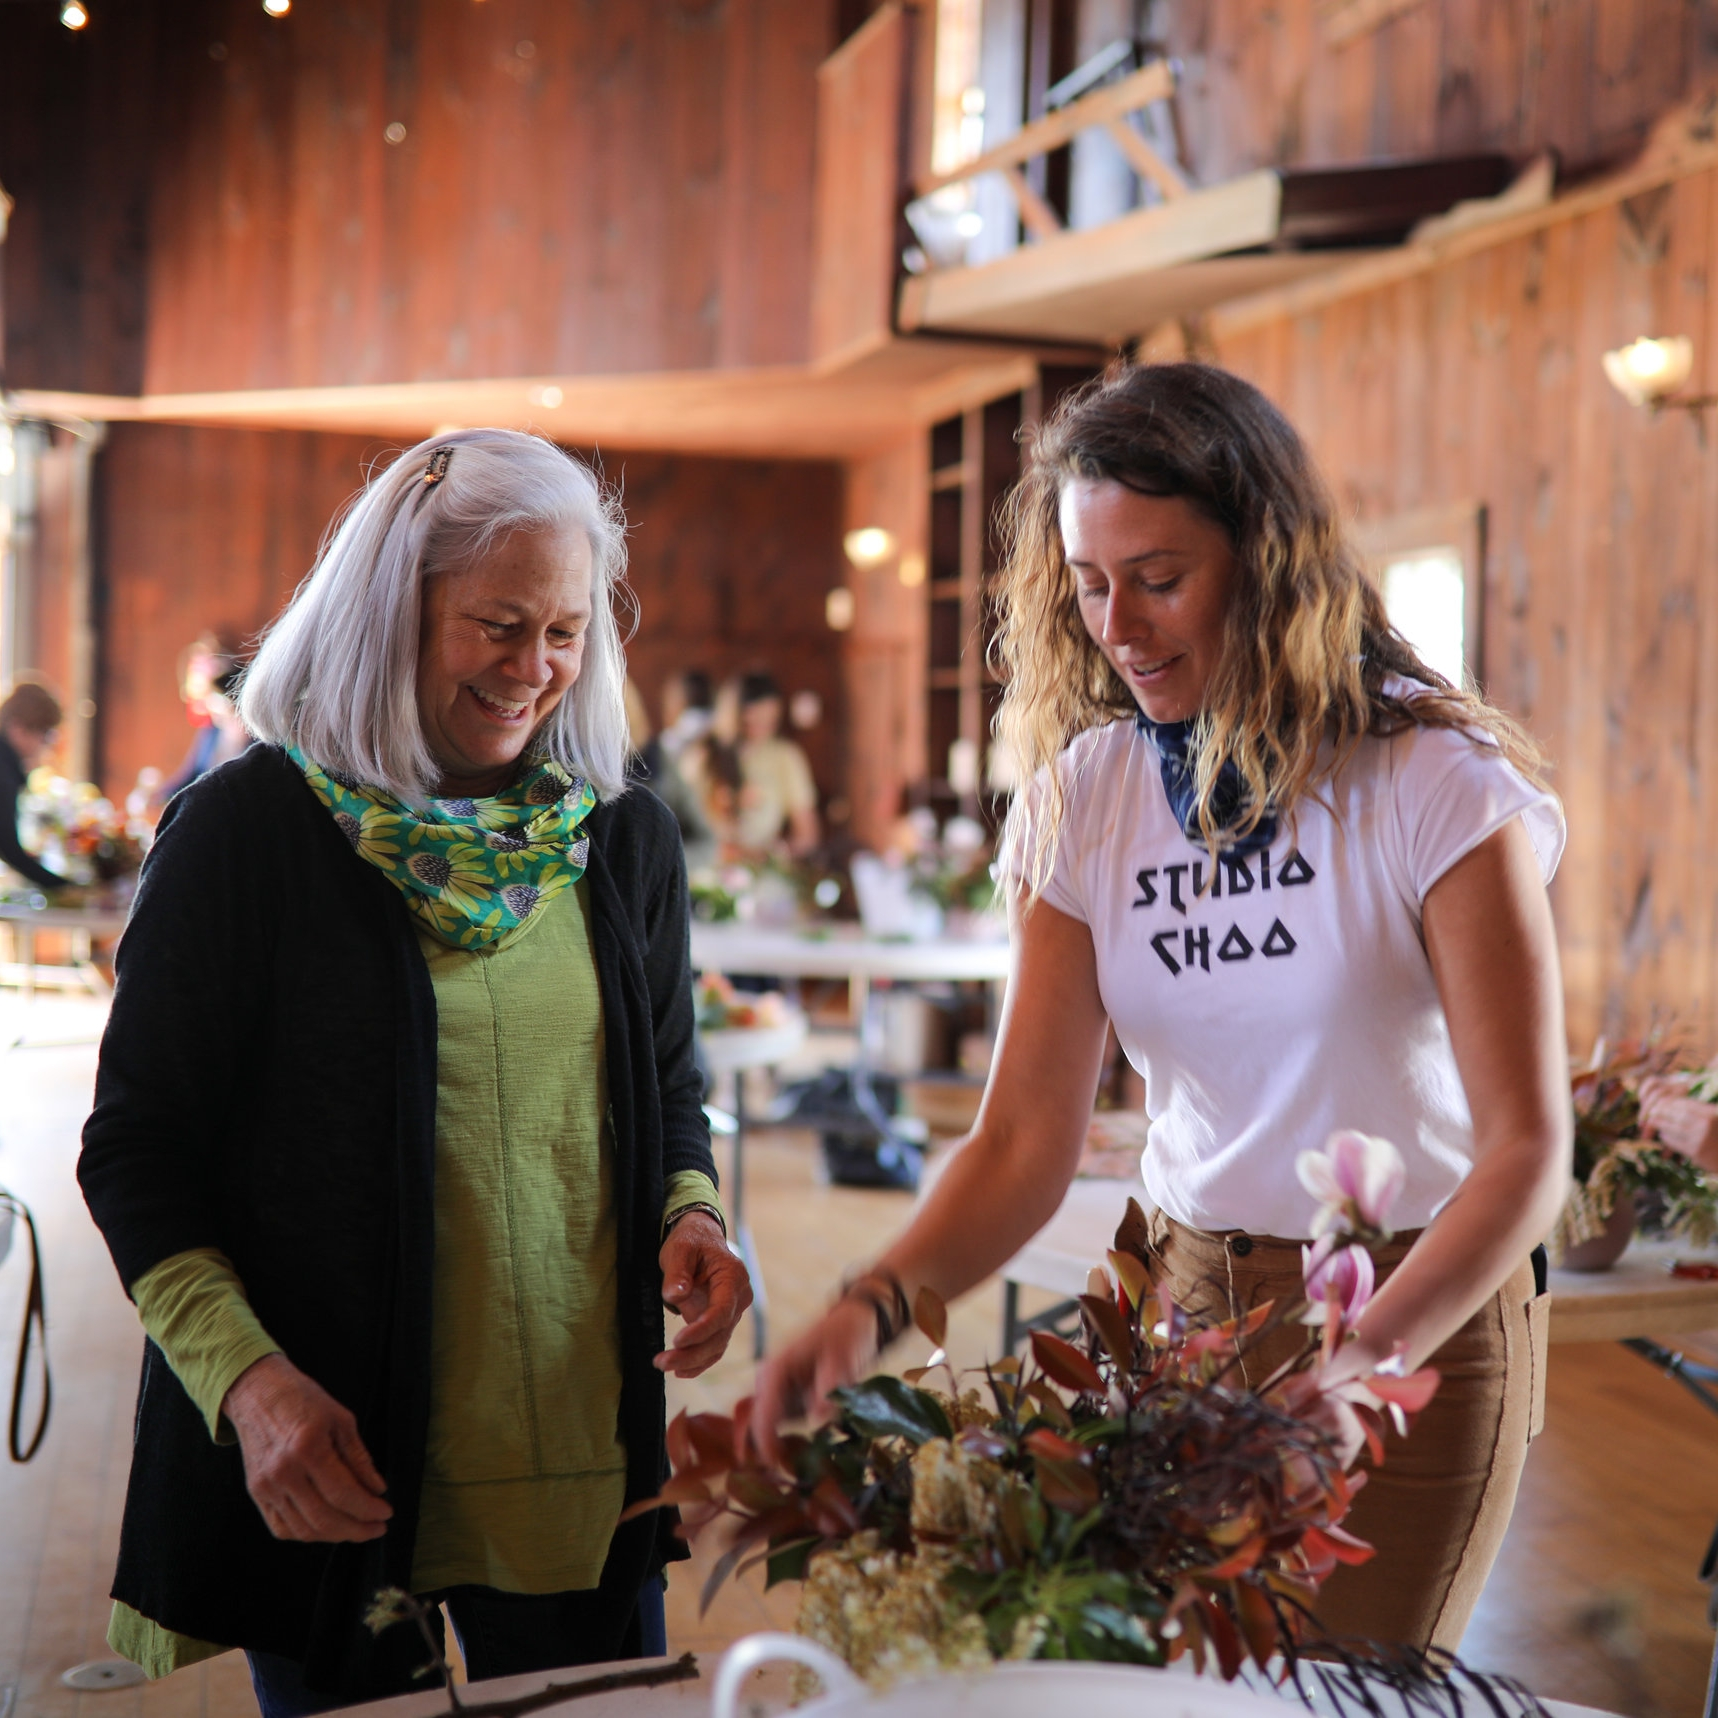 Earth Day Workshop at Mount Hope Farm. Photographed by Maaike Bernstrom.